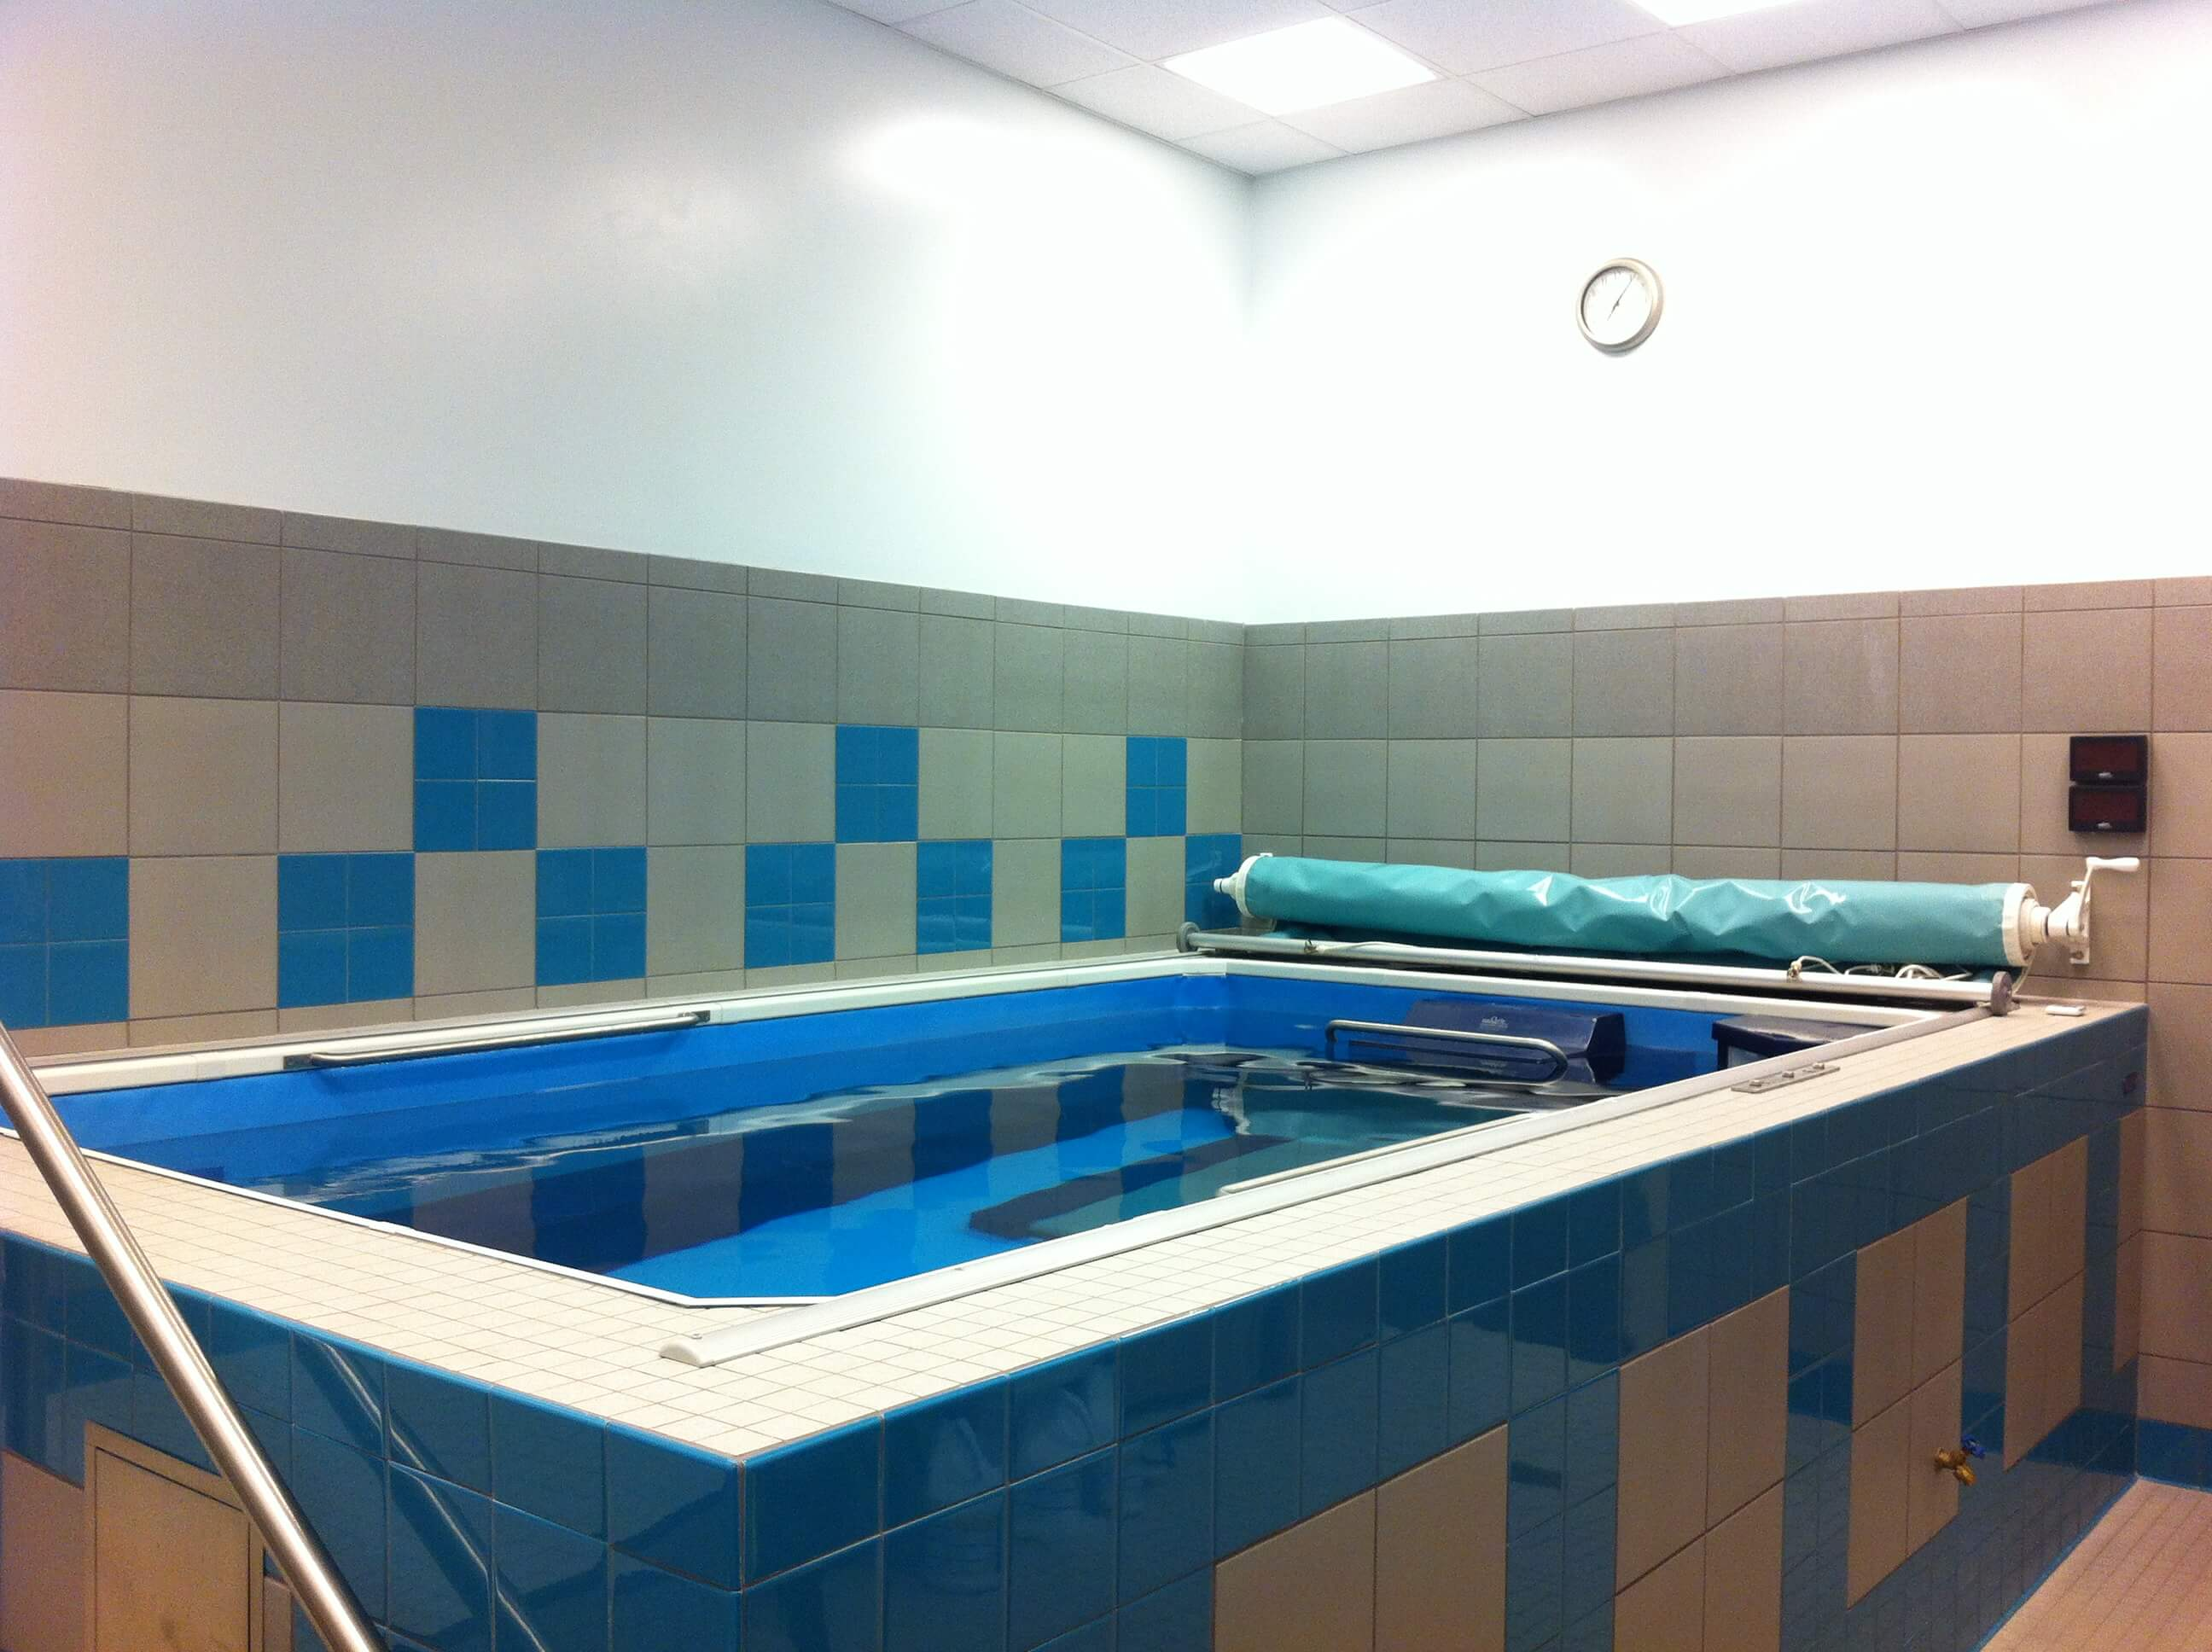 Physical Therapy session in the Endless Pool at Kinetic Physical Therapy